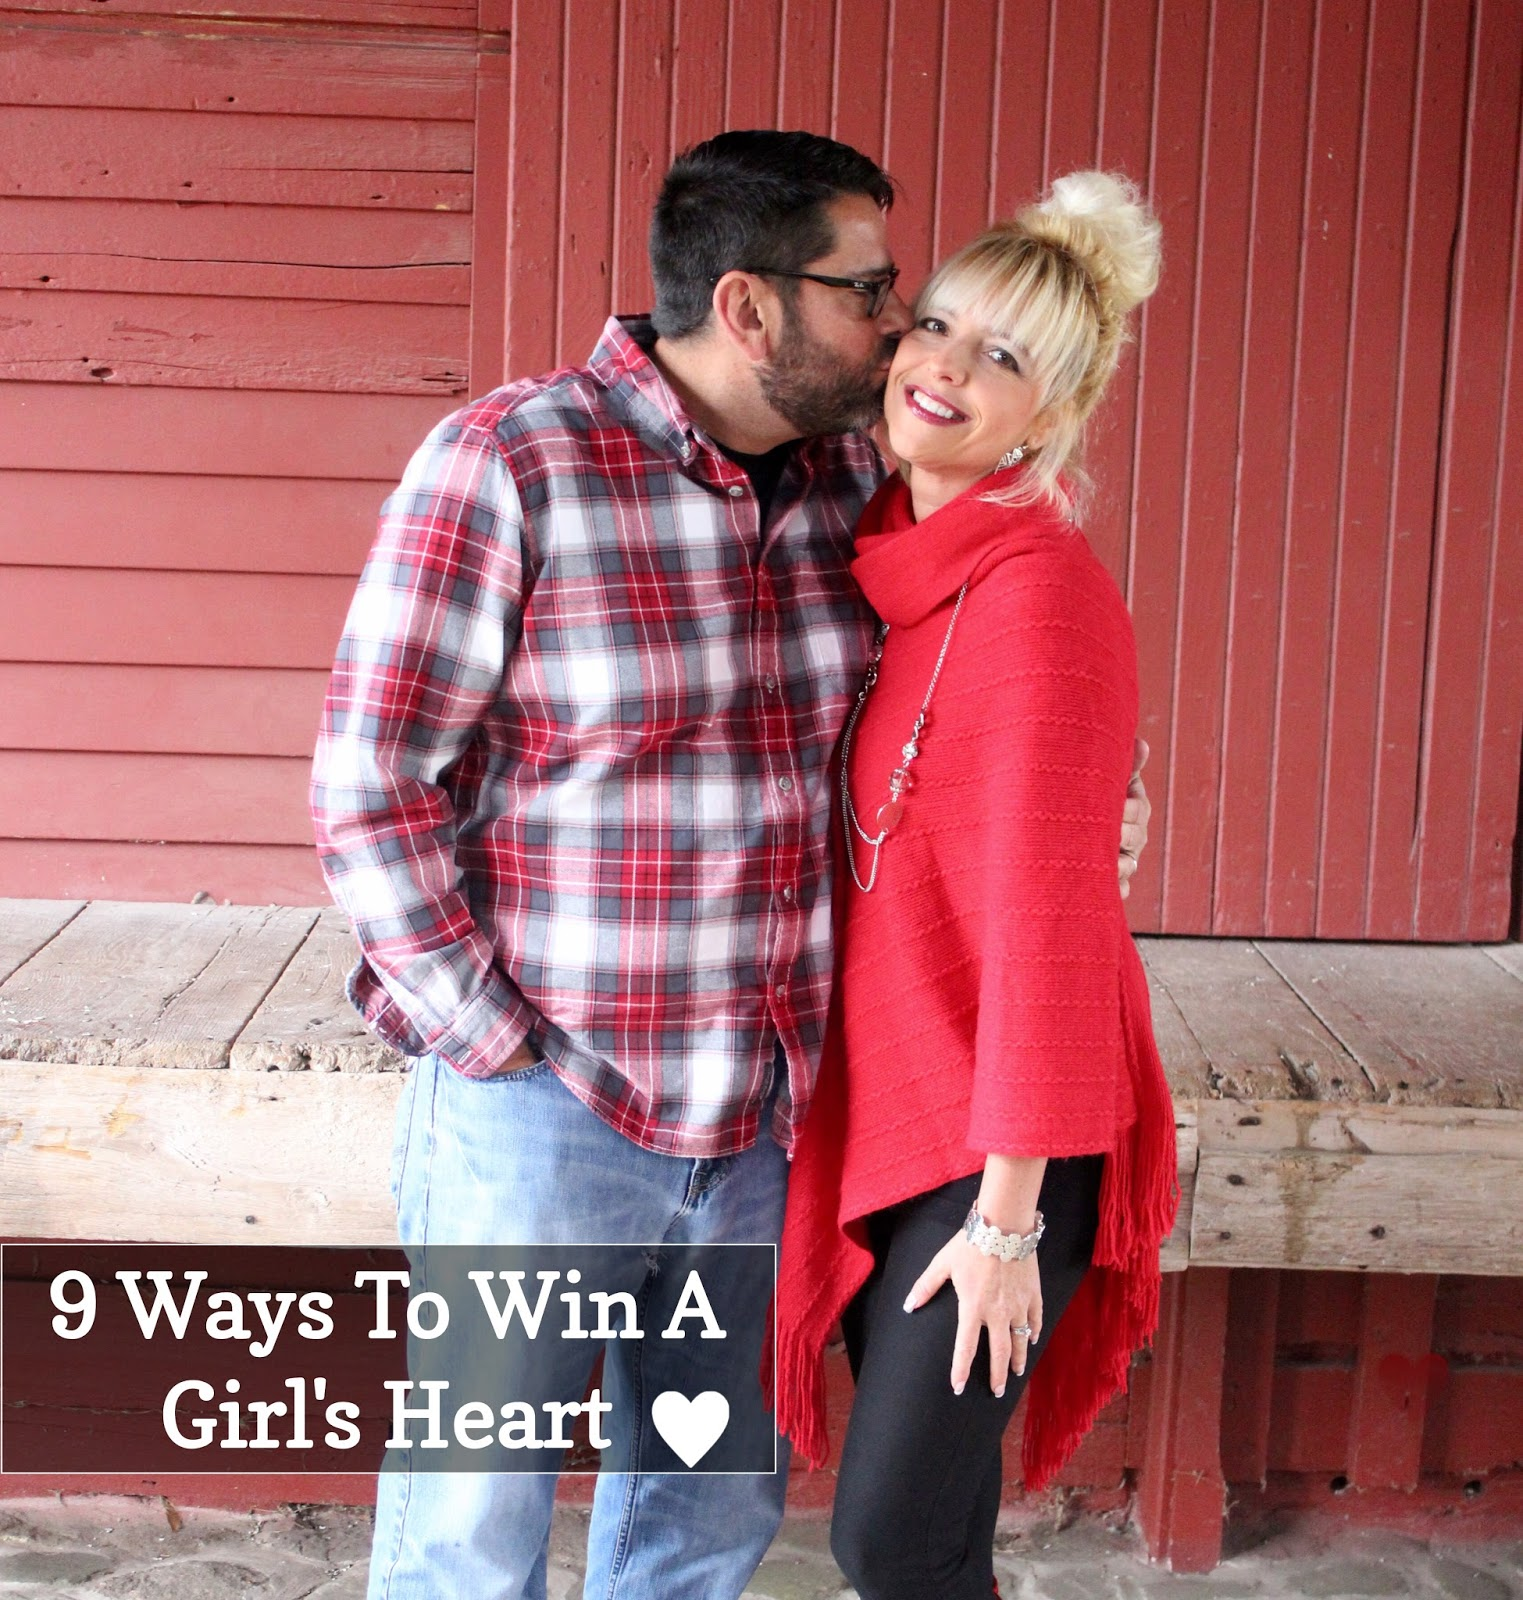 30 ways to win a girls heart Of course, really clever girls have been older, wealthier men's mistresses pretty much forever and, in some ways, that is a healthier relationship ginkgo says: august 24, 2015 at 5:06 pm.